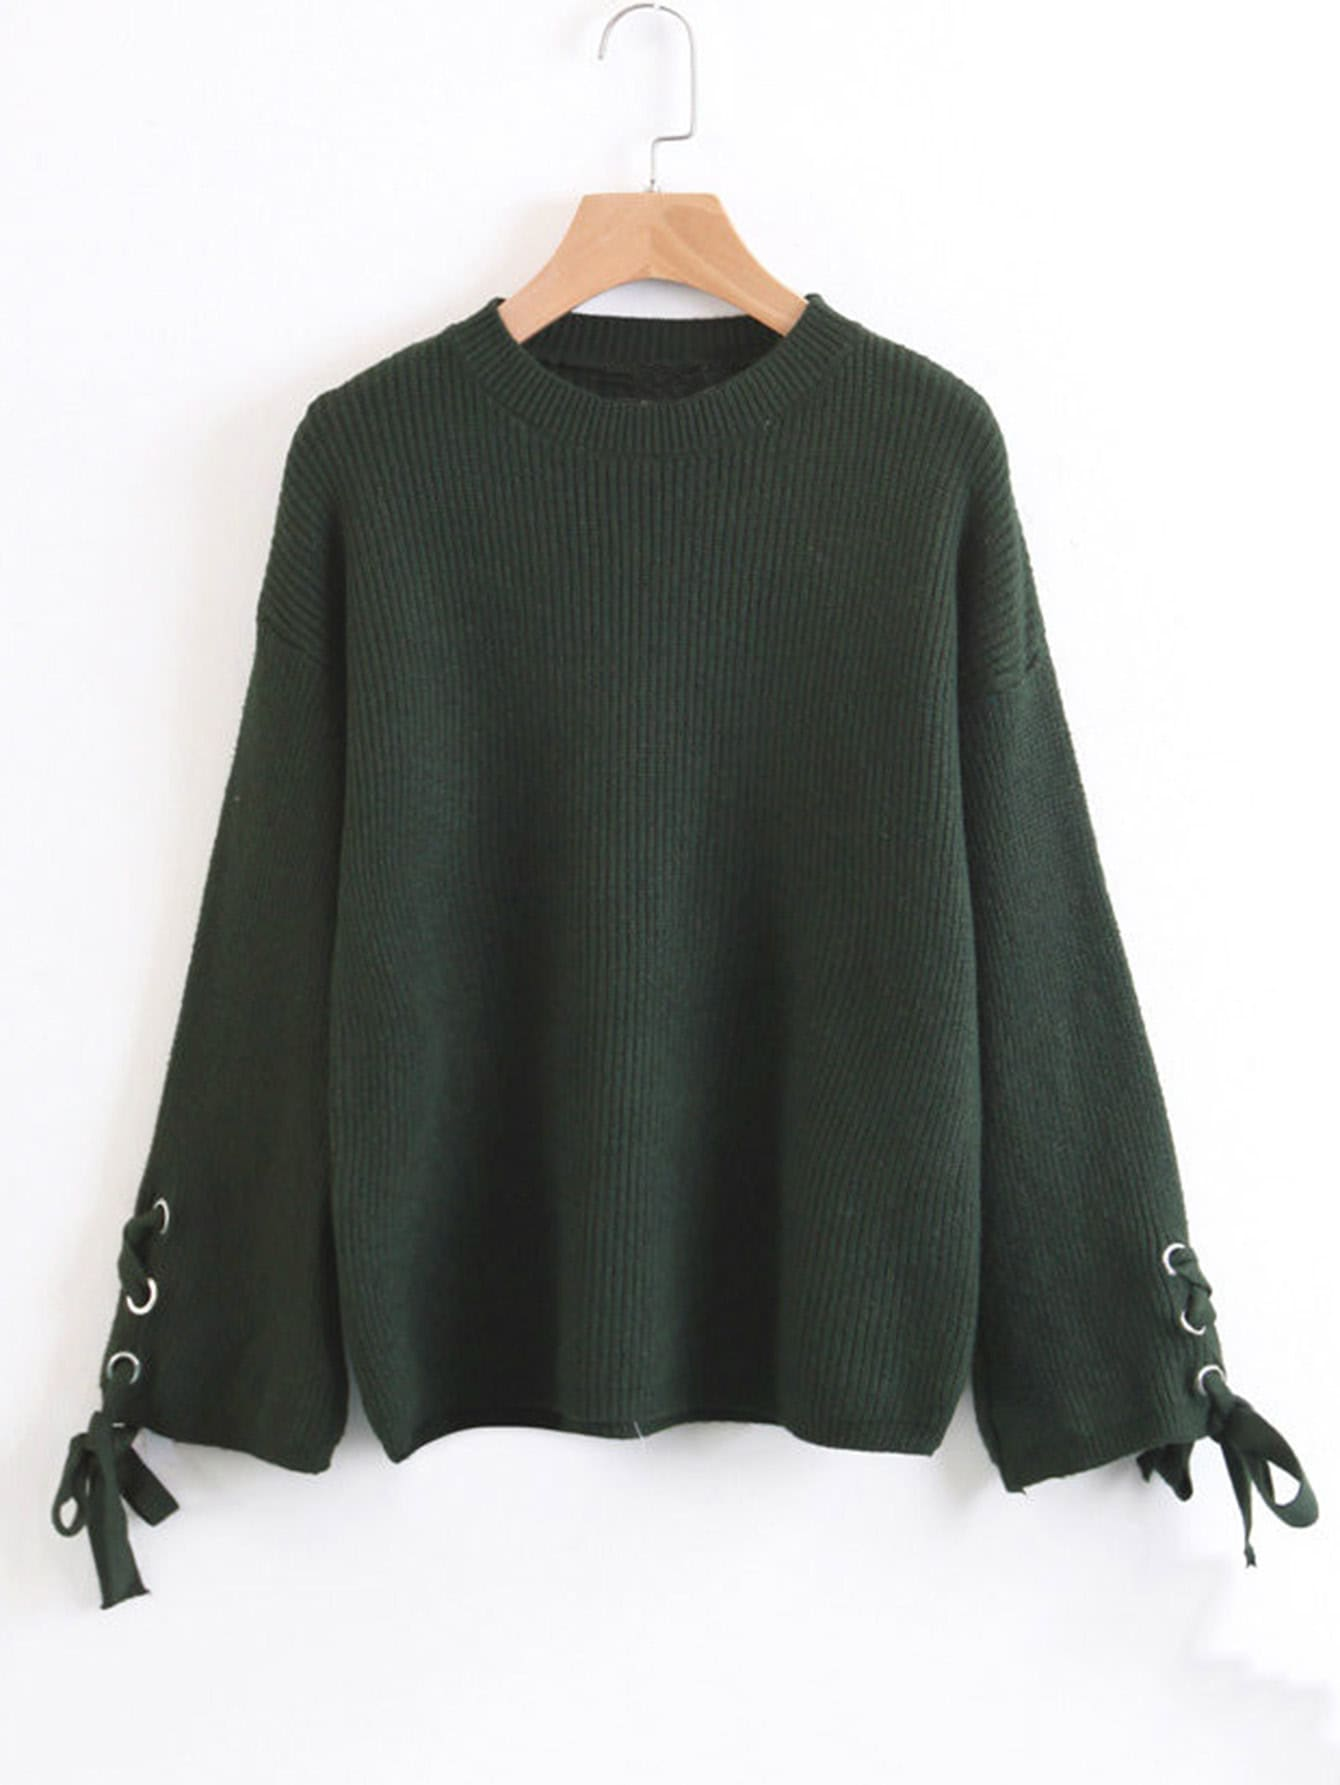 Lace Up Cuff Ribbed Knit Sweater sweater170920204